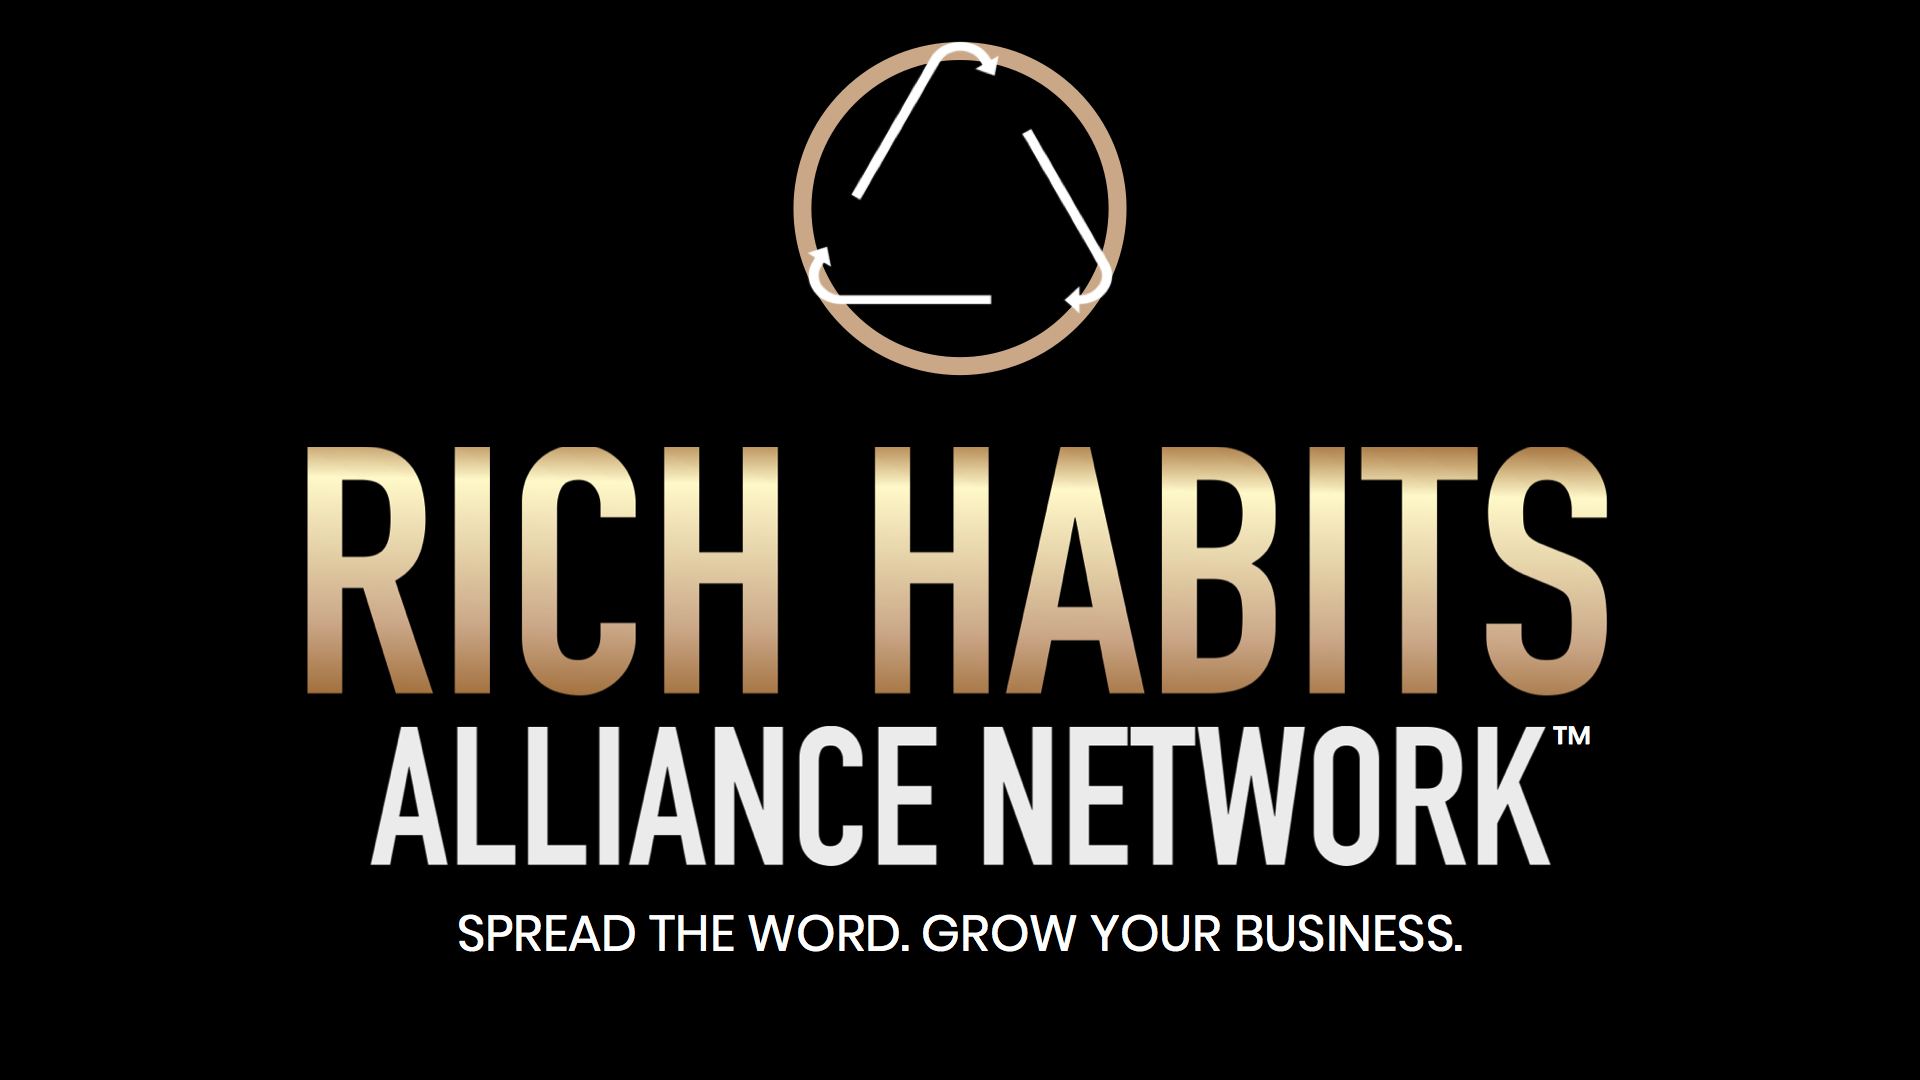 RICH HABITS ALLIANCE NETWORK LOGO.png